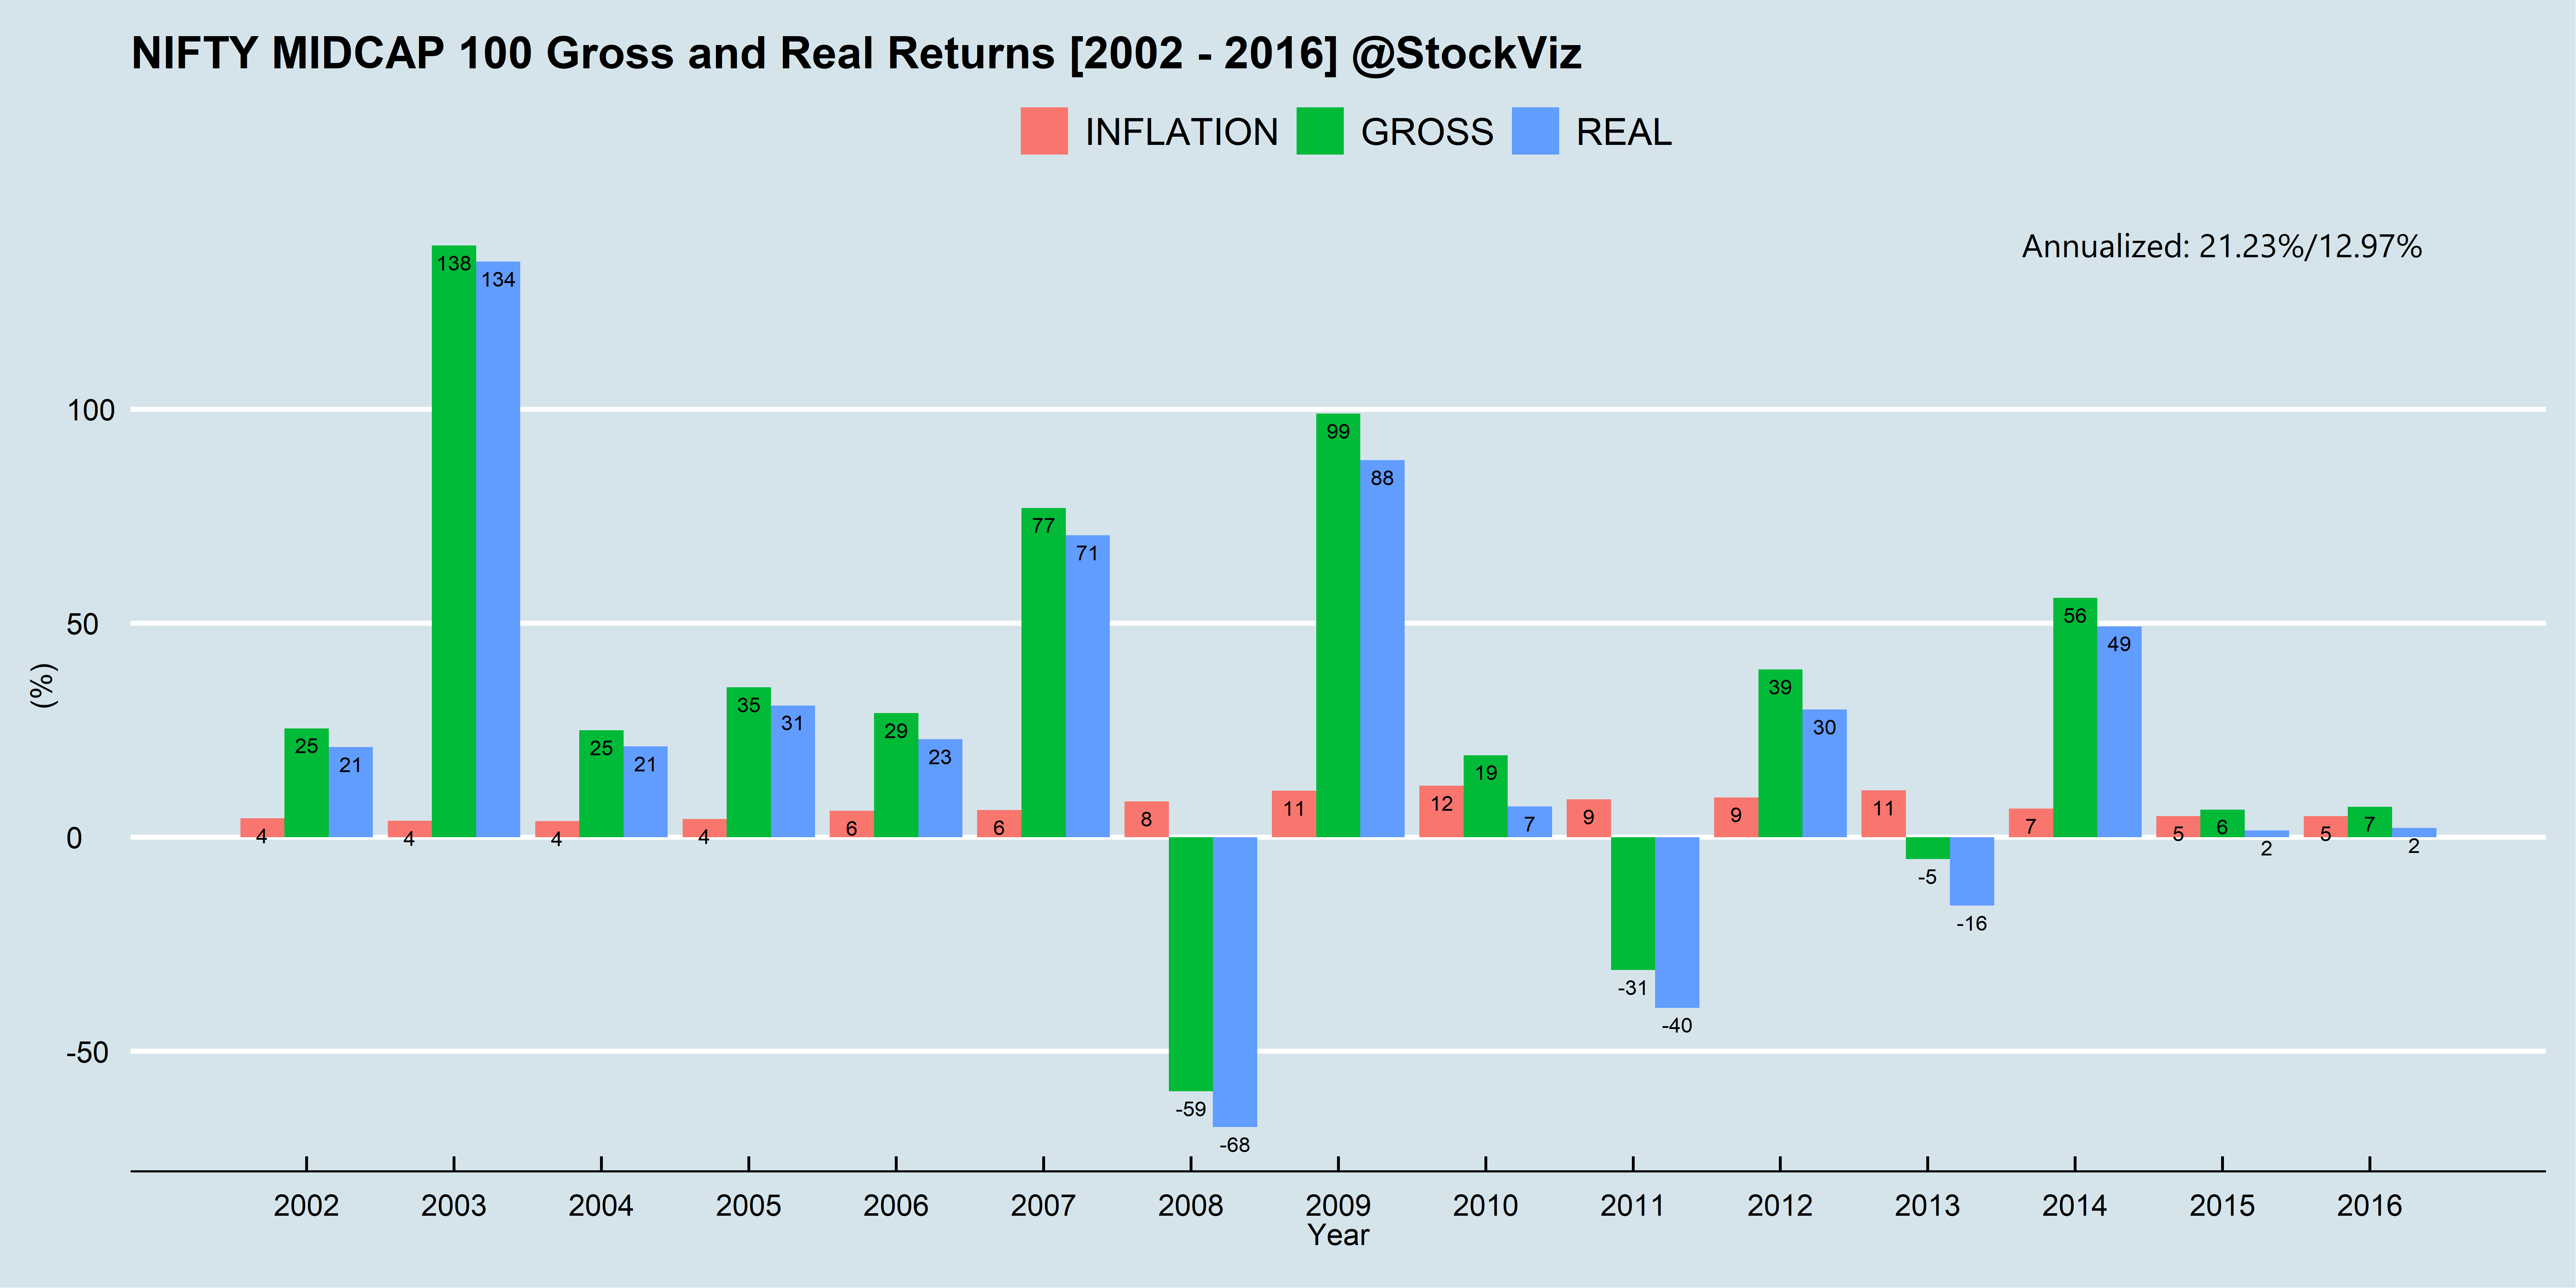 annualized historical midcap 100 returns